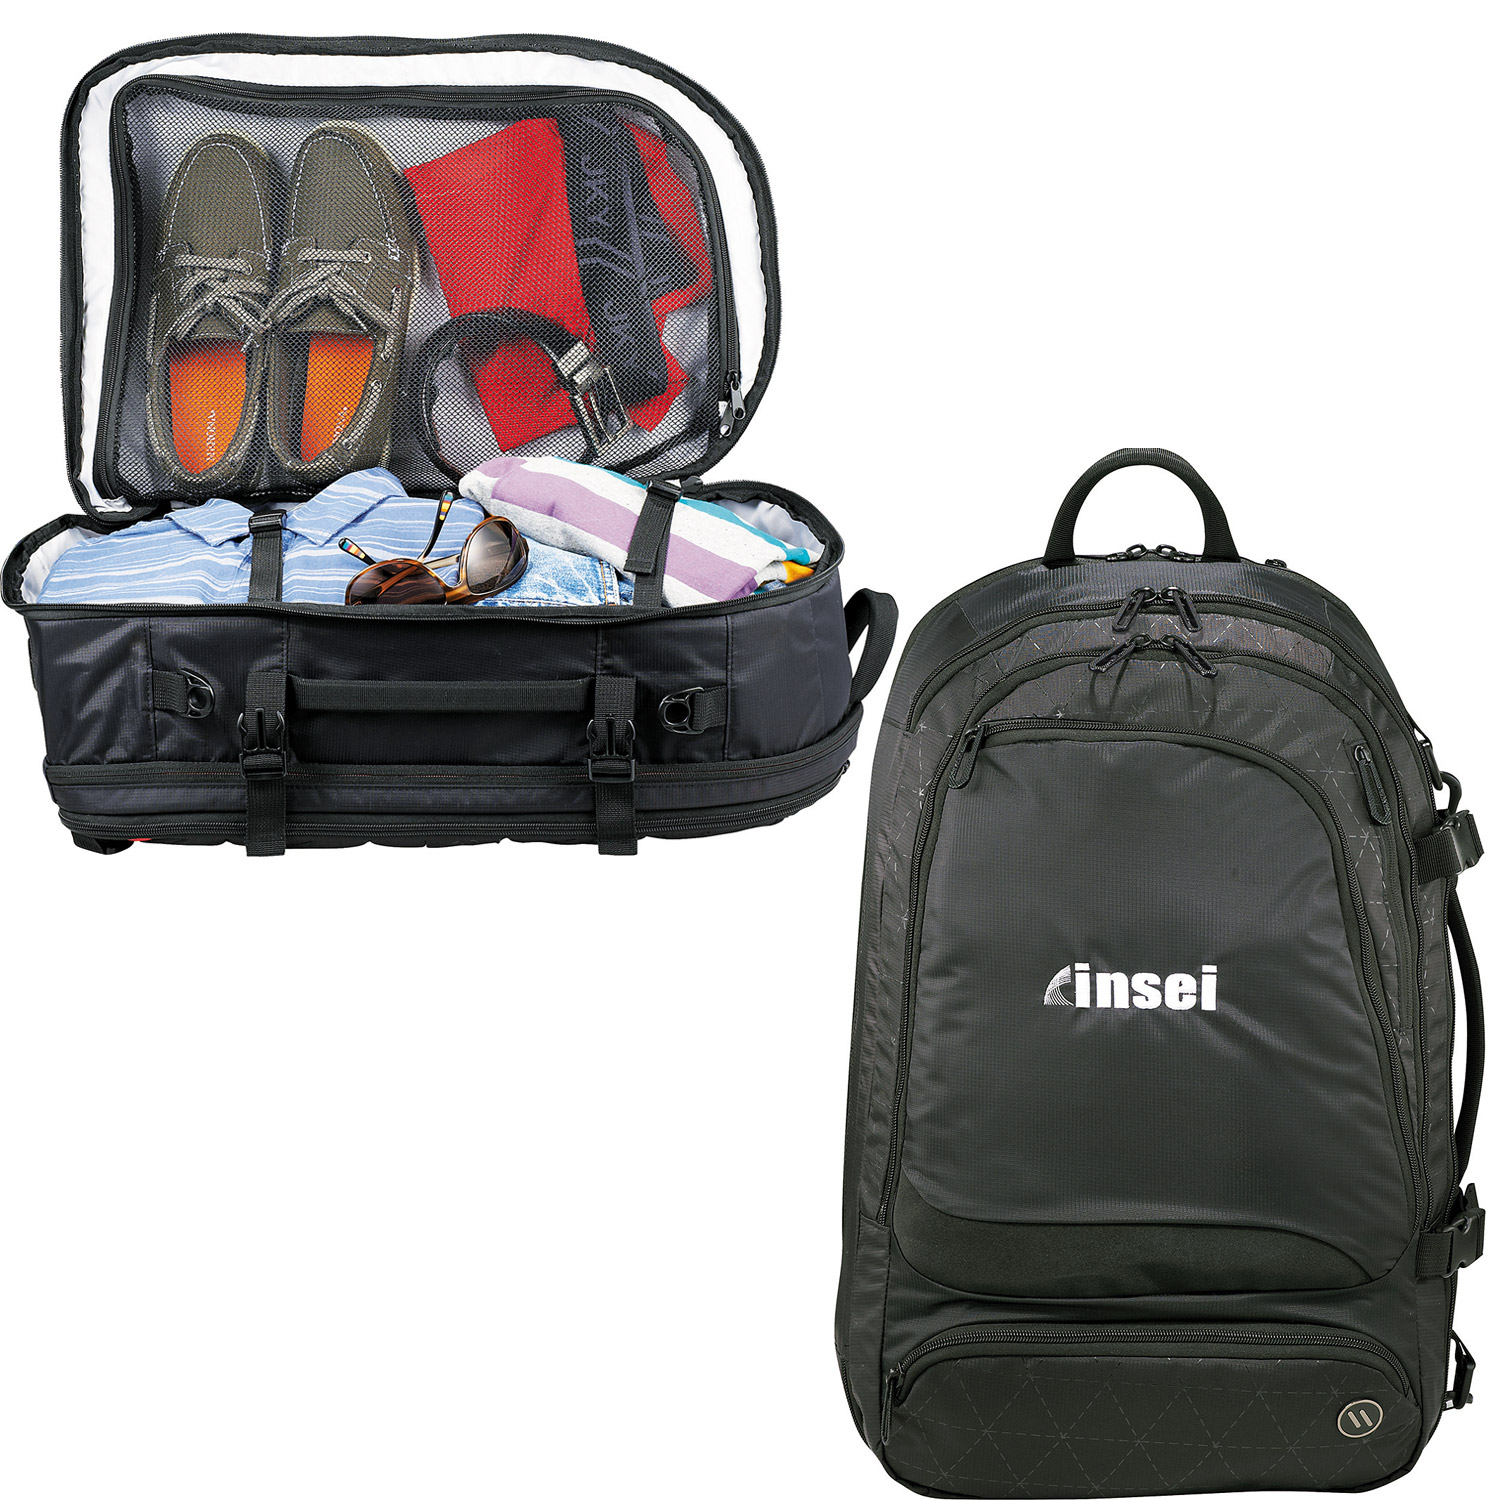 Elleven™ Traverse Convertible Travel Backpack - Push Promotional ...